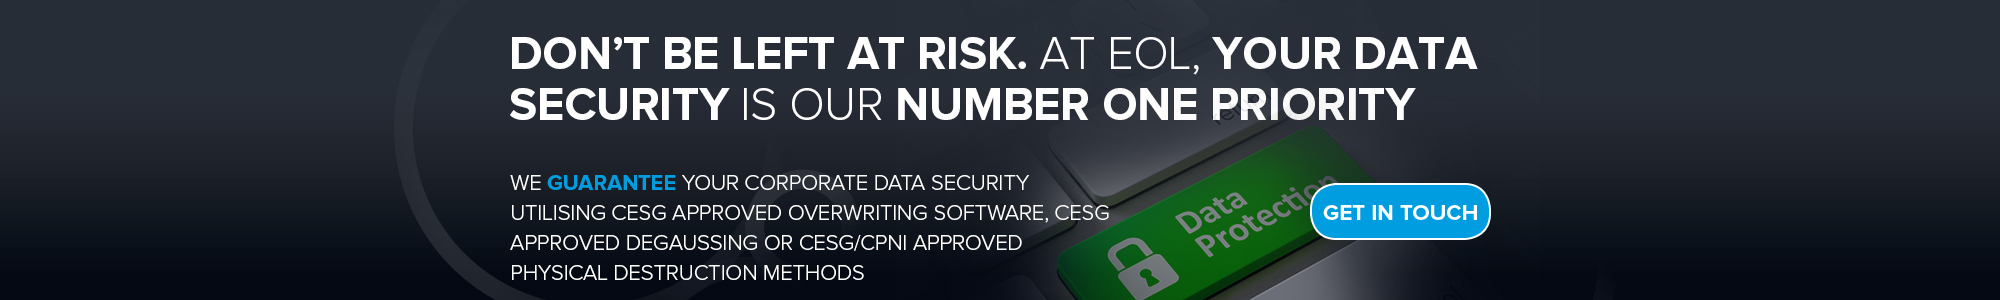 Don't be left at risk. At EOL, your data security is out number one priority